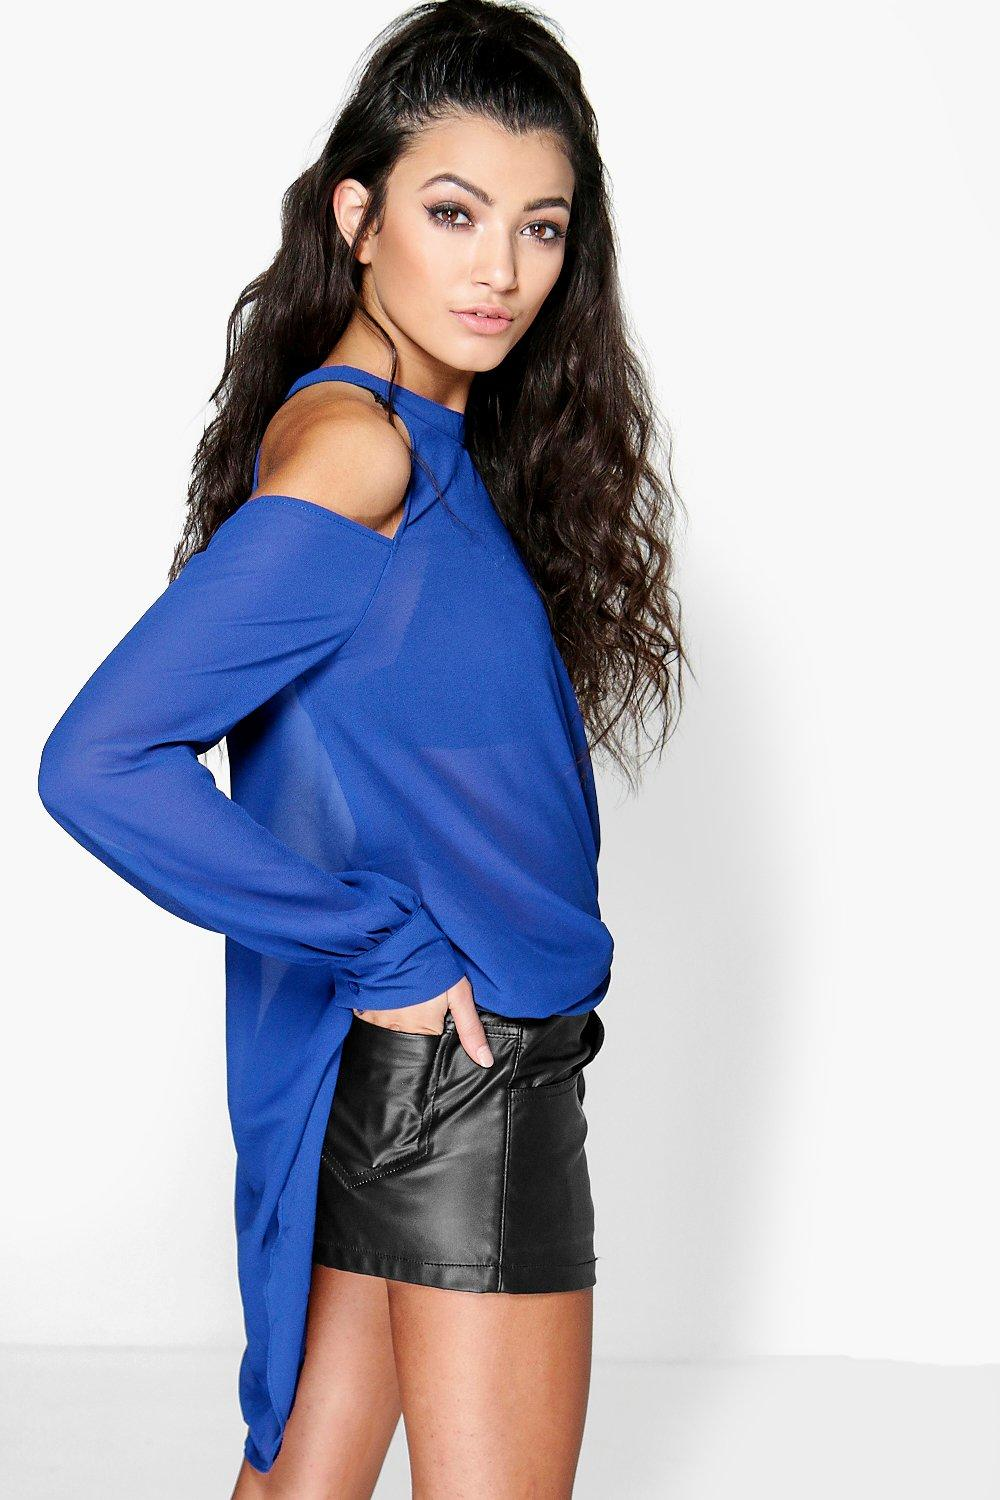 Boohoo Womens Ladies Isabelle High Neck Cut Out Shoulder Blouse